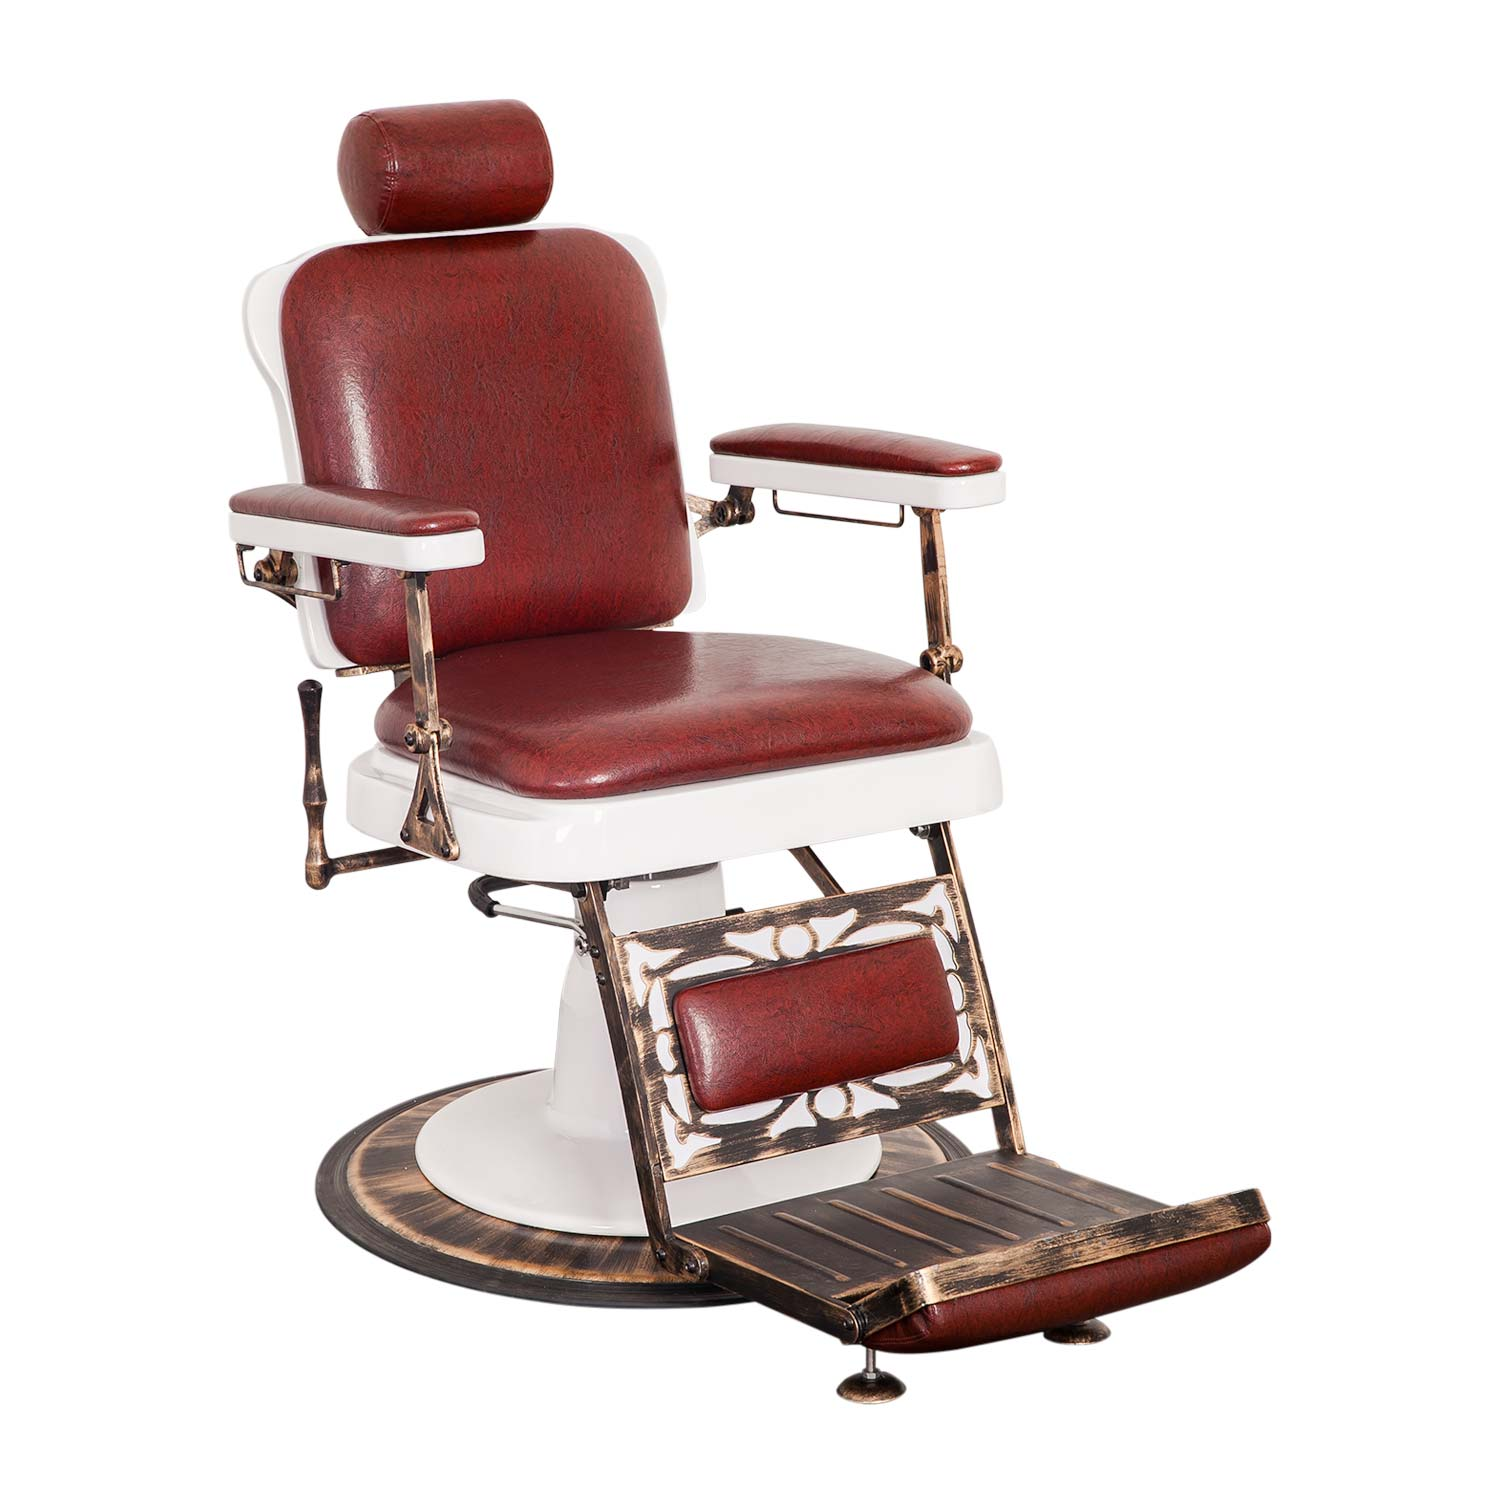 Pibbs 662 King Reclining Barber Chair  main product image